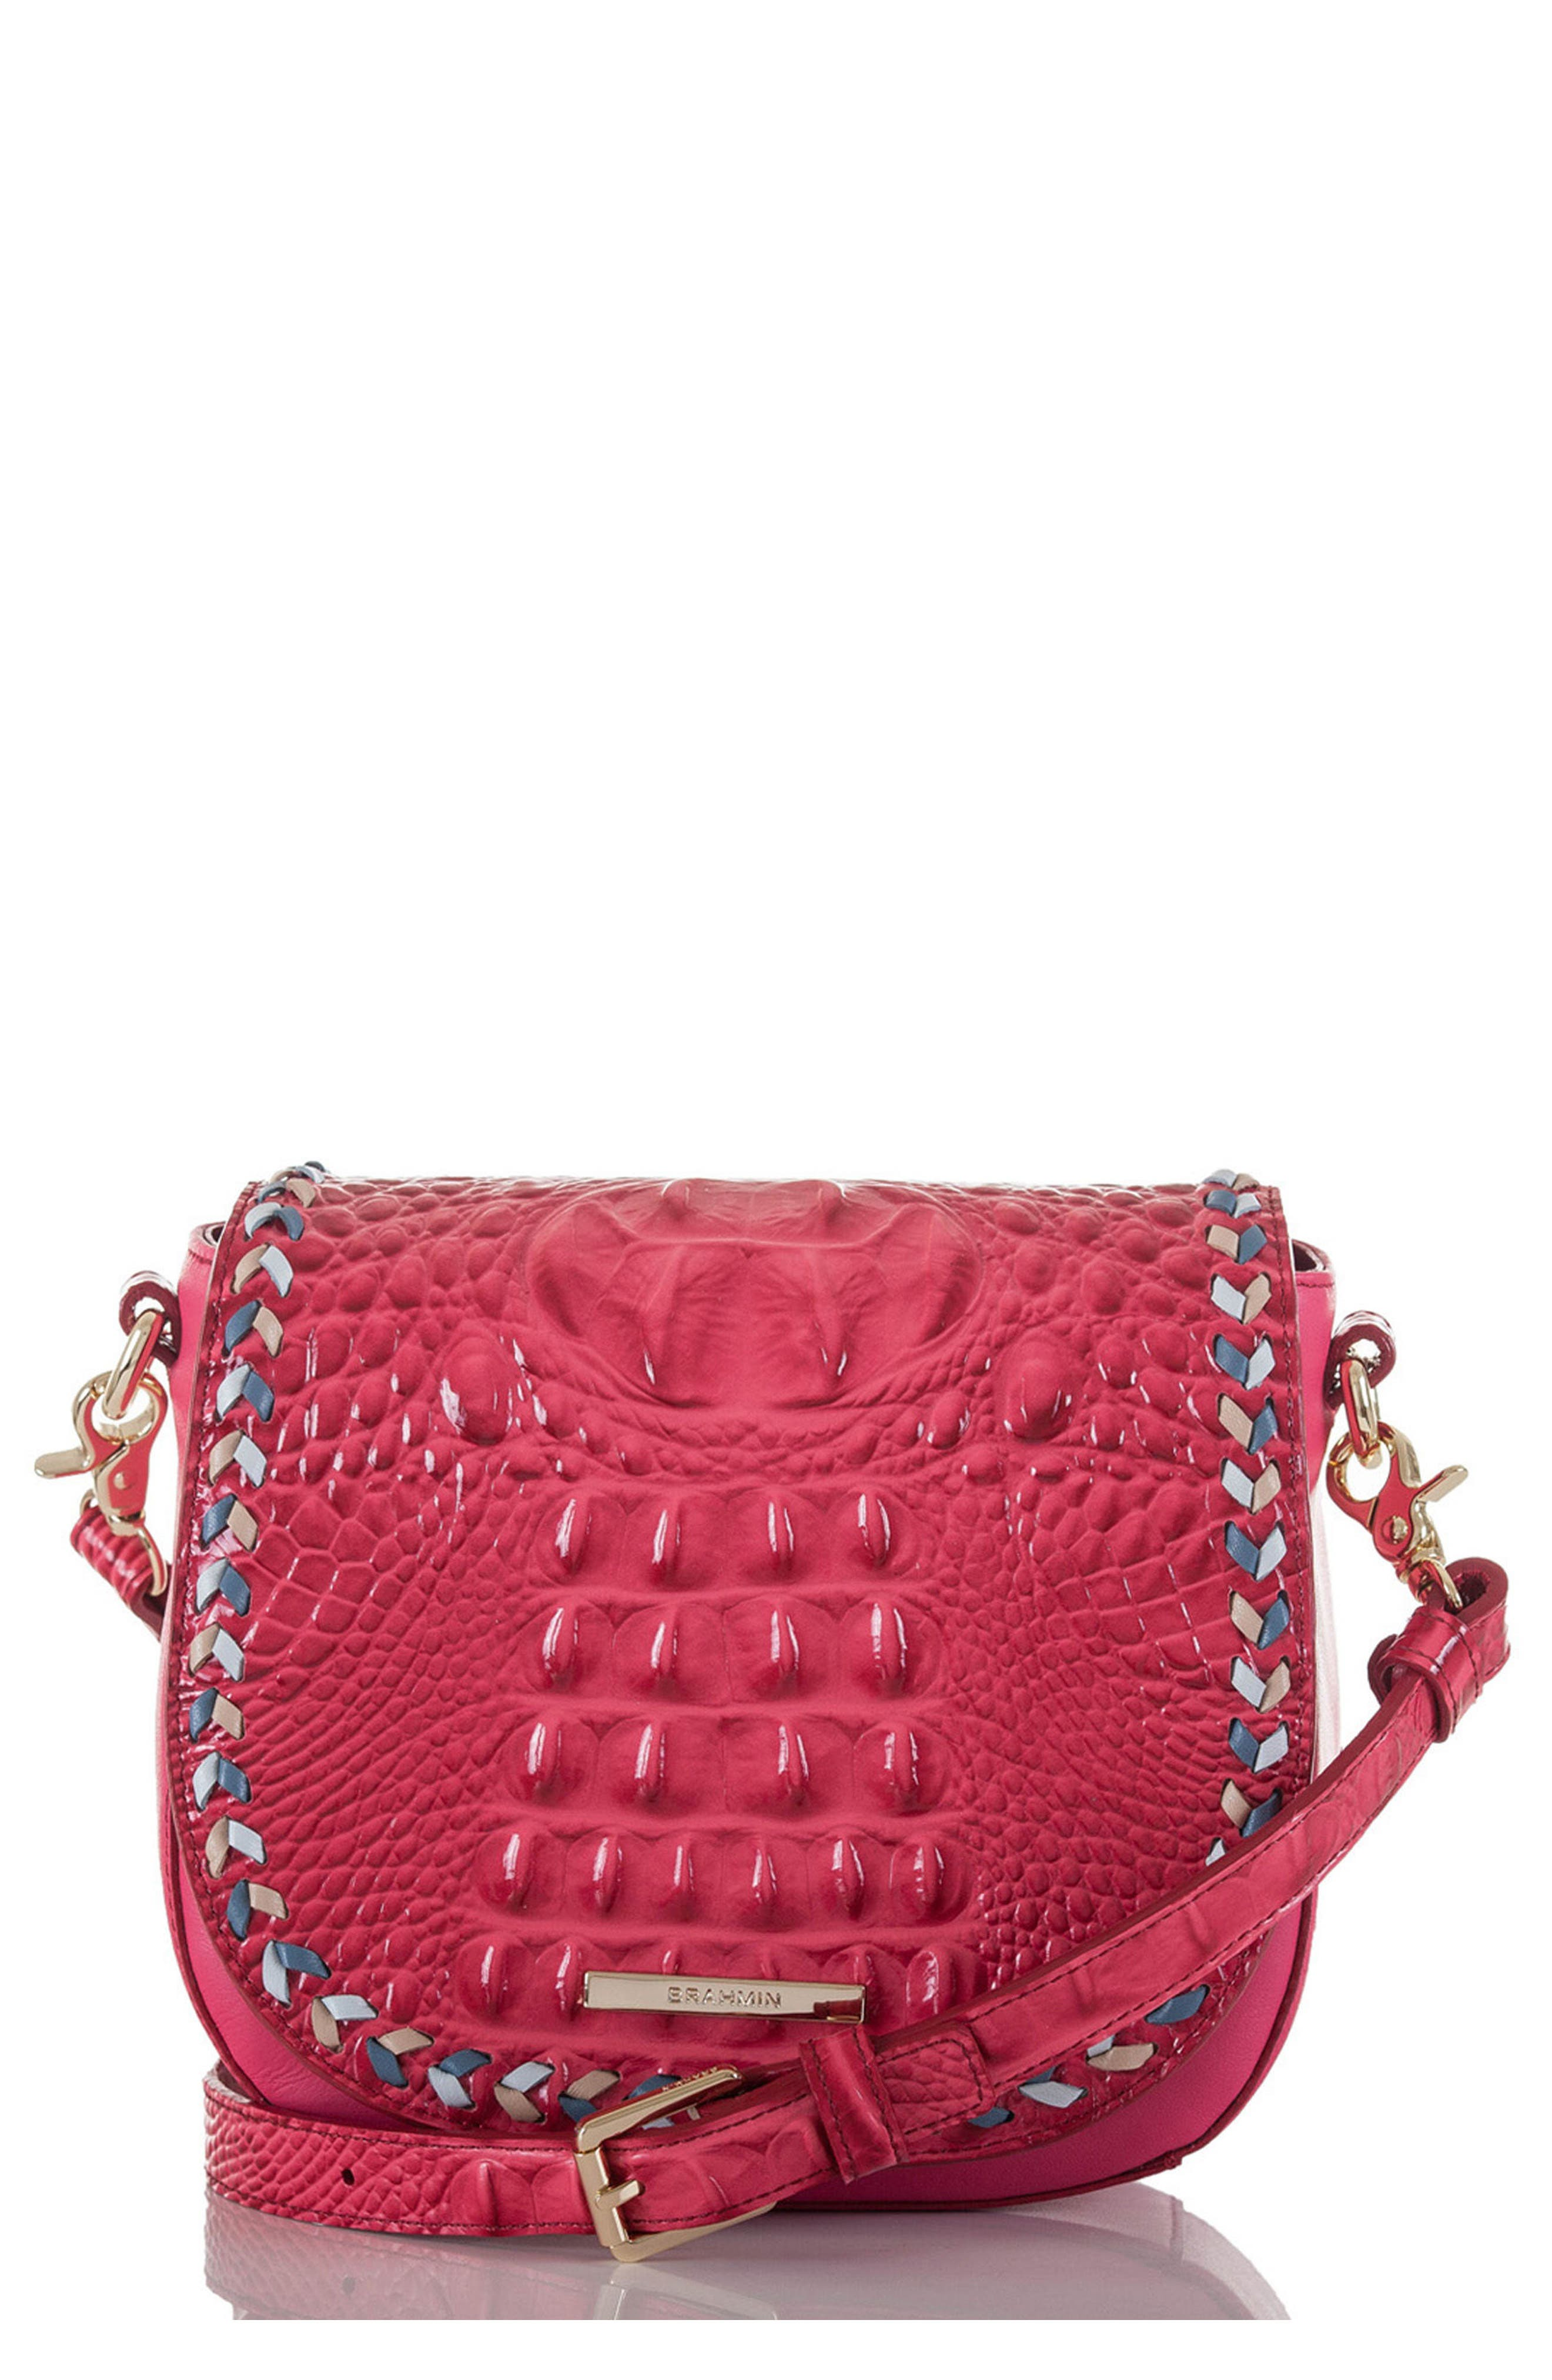 Mini Sonny Whipstitched Leather Crossbody Bag,                             Main thumbnail 1, color,                             650